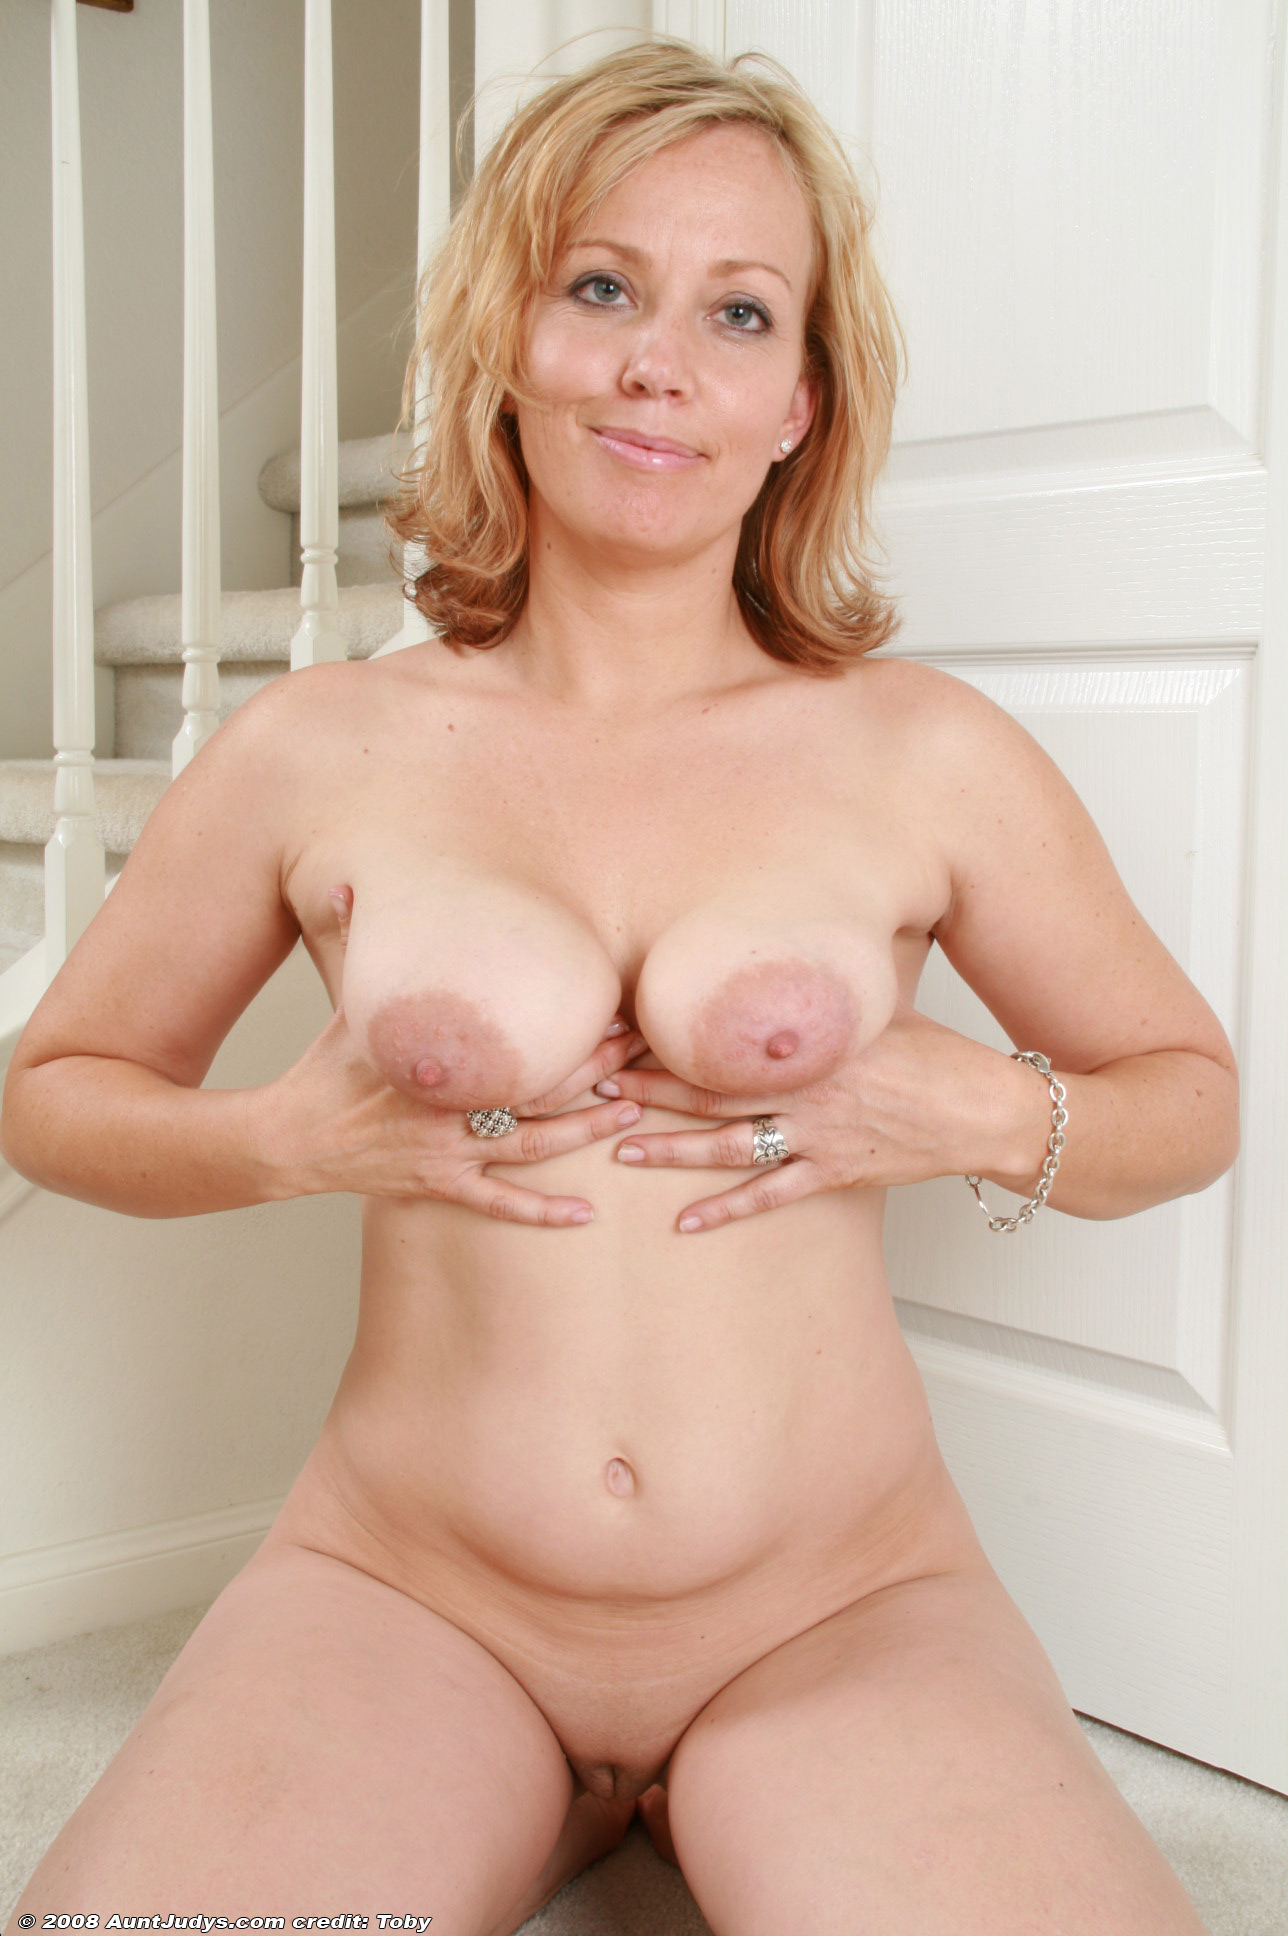 Aunt Judys - Free Videos & Pics from AuntJudyscom